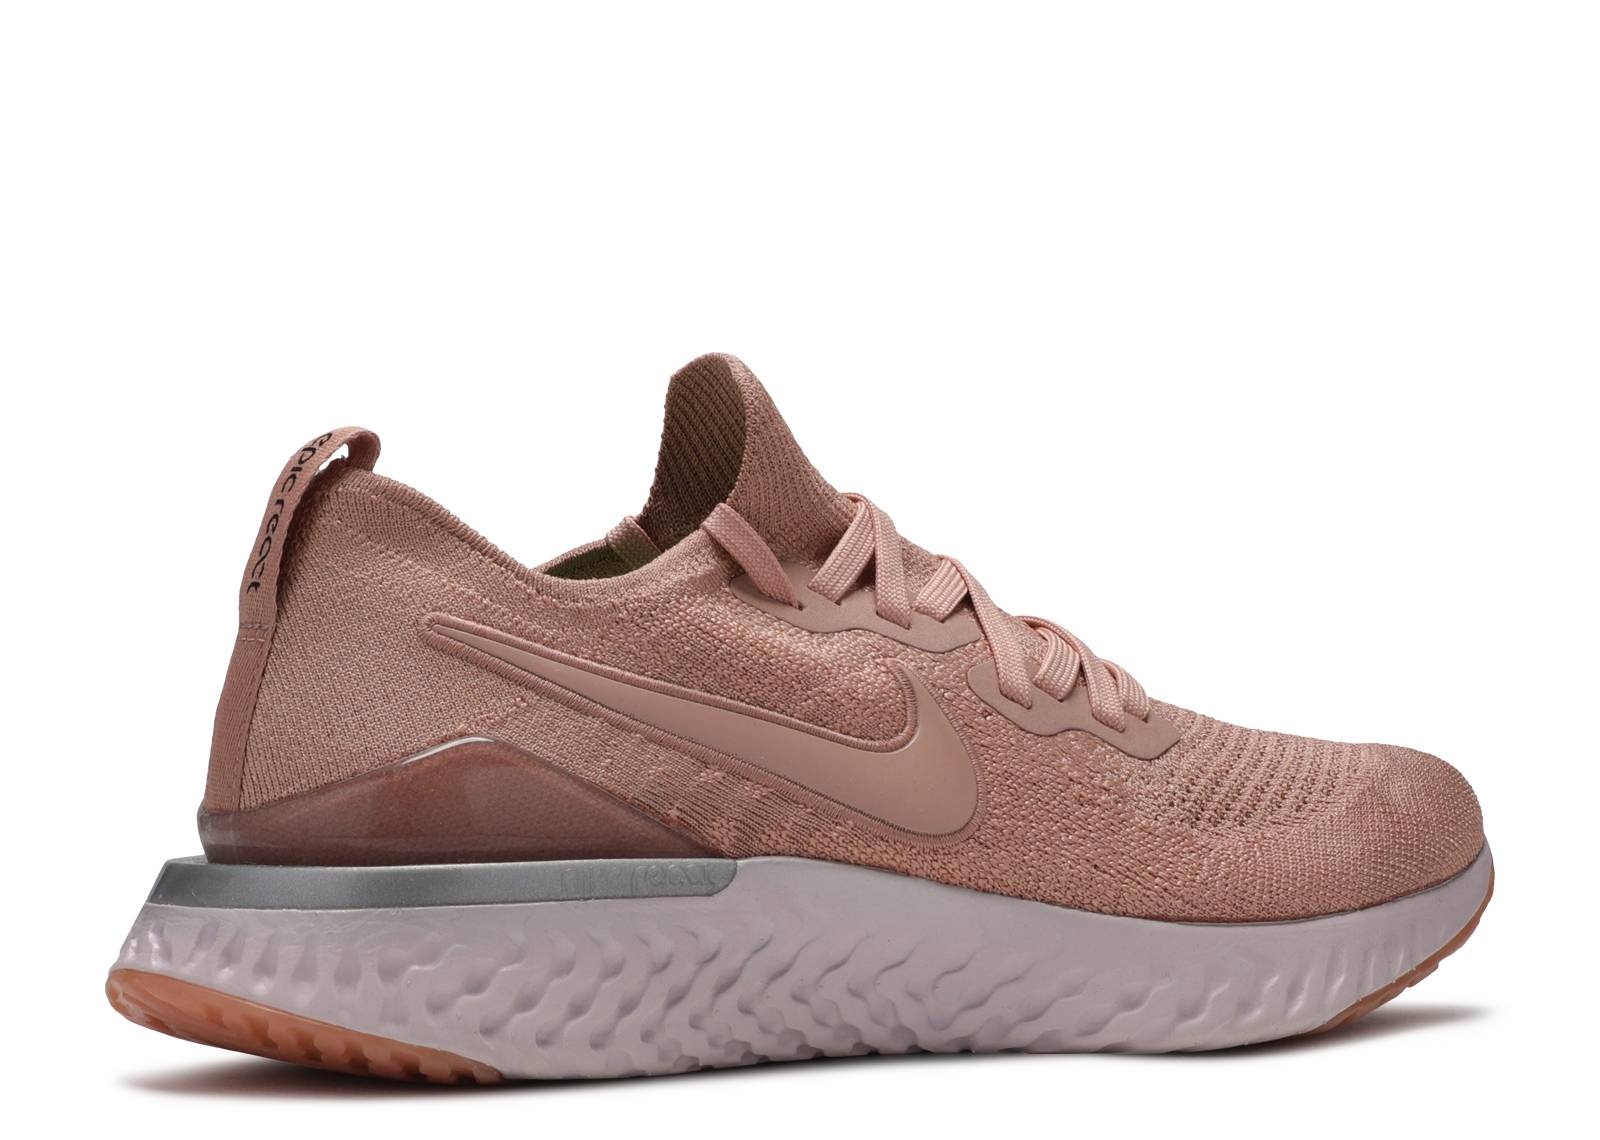 nike running epic react flyknit trainers in white and rose gold